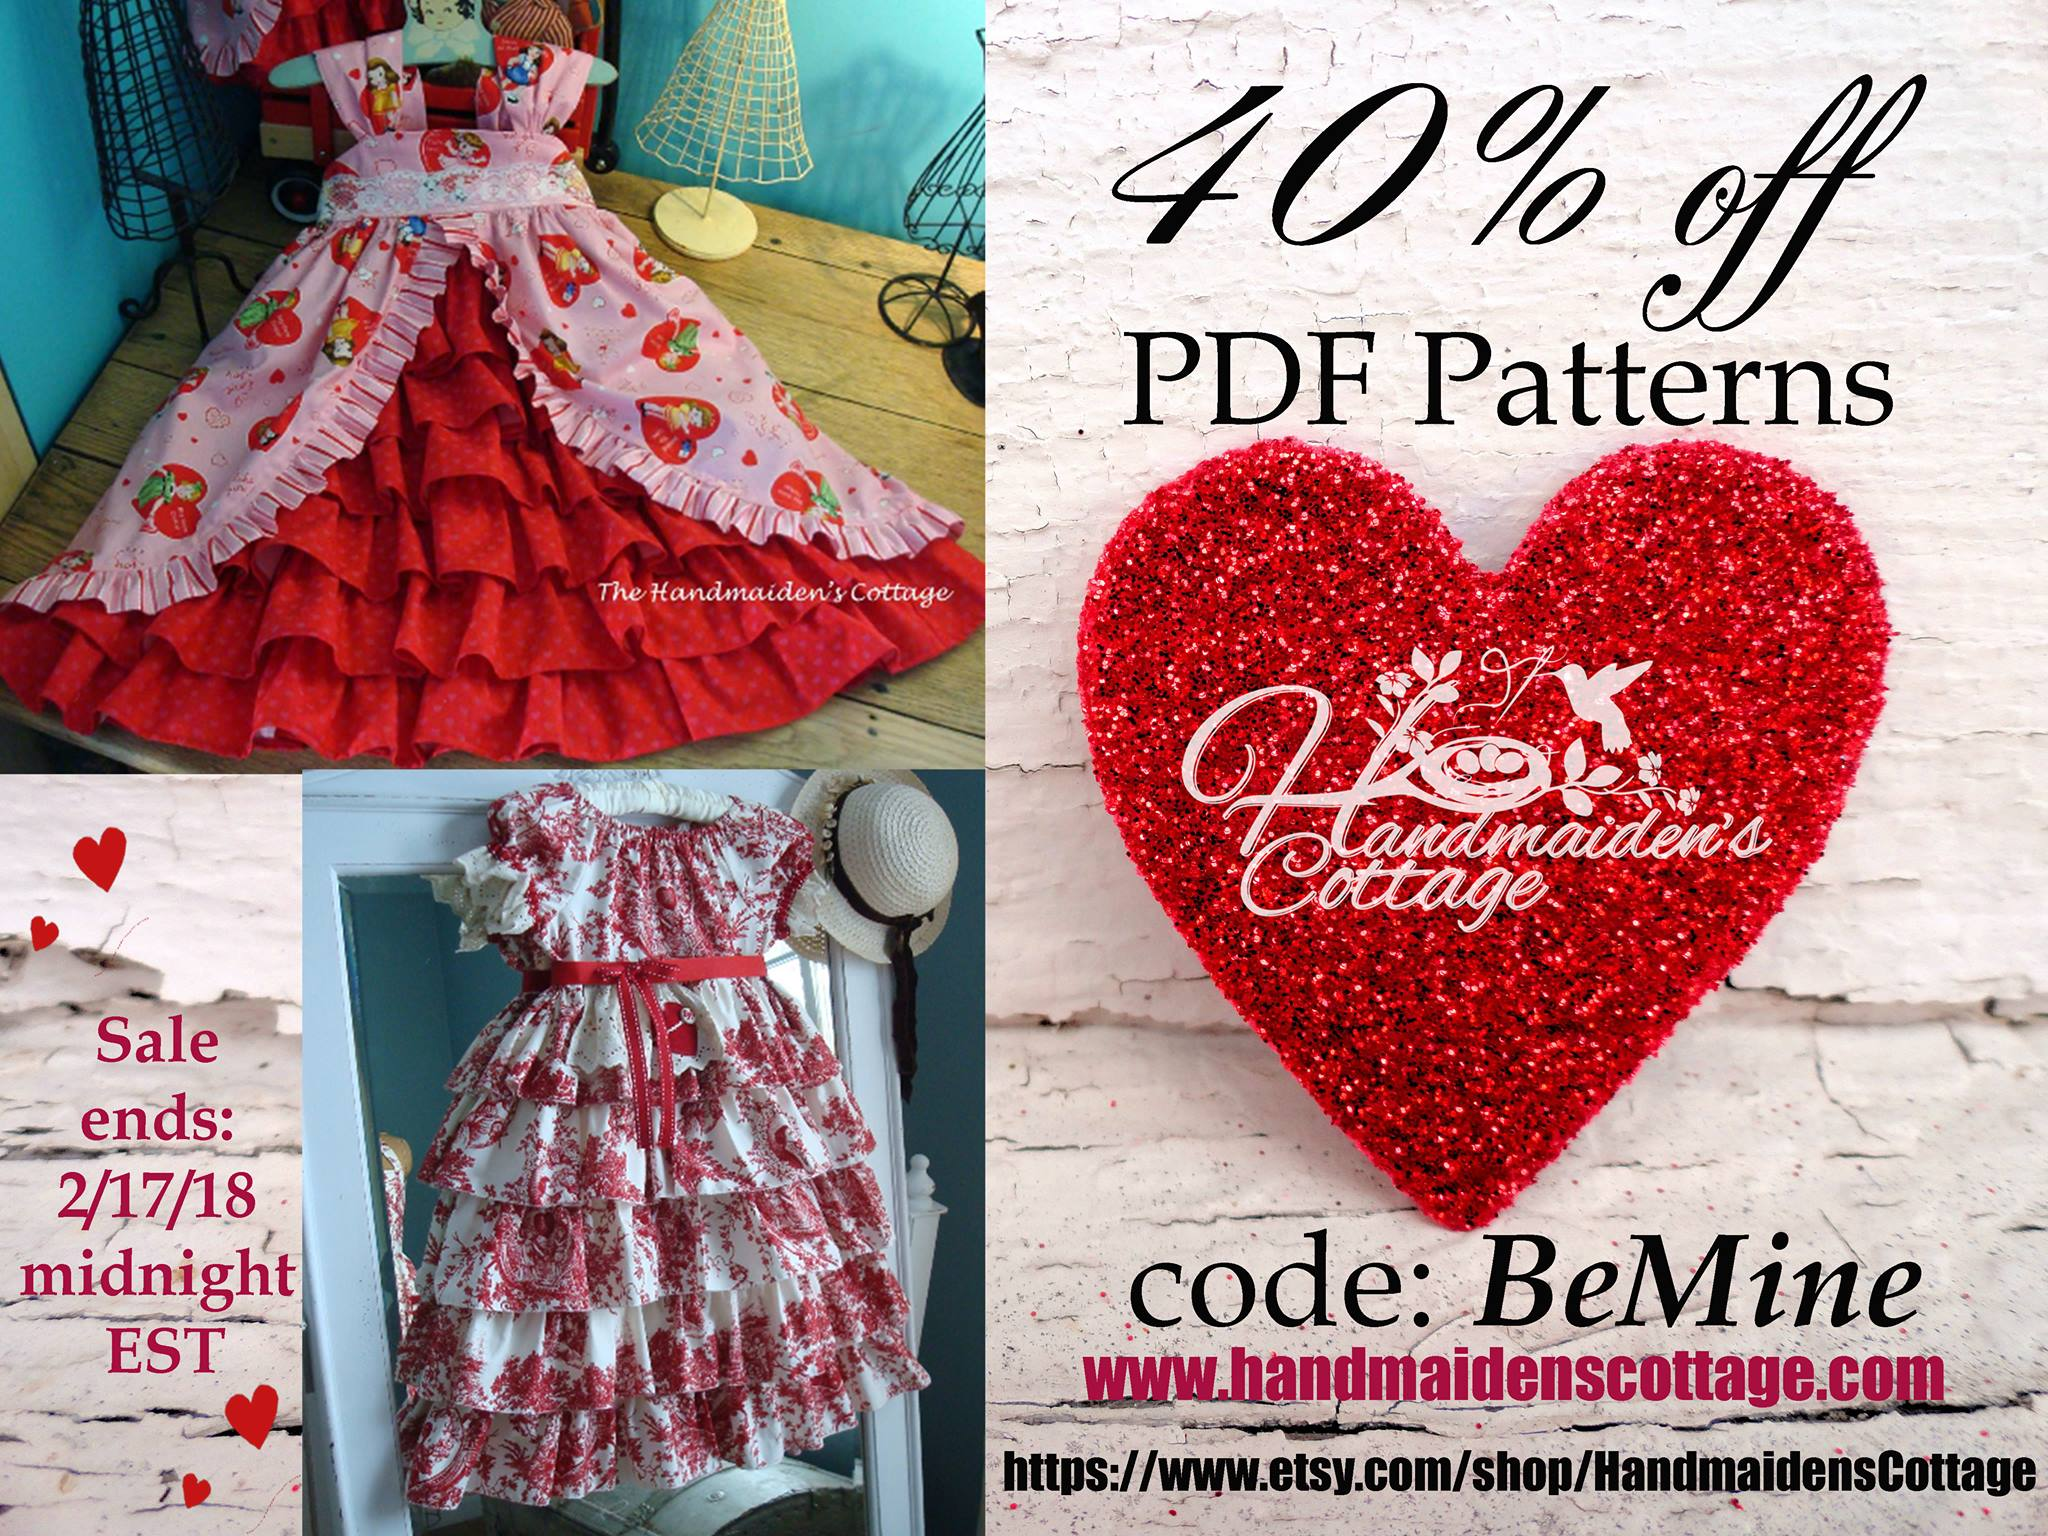 handmaidens cottage vintage girls dresses sewing patterns valentines day sale